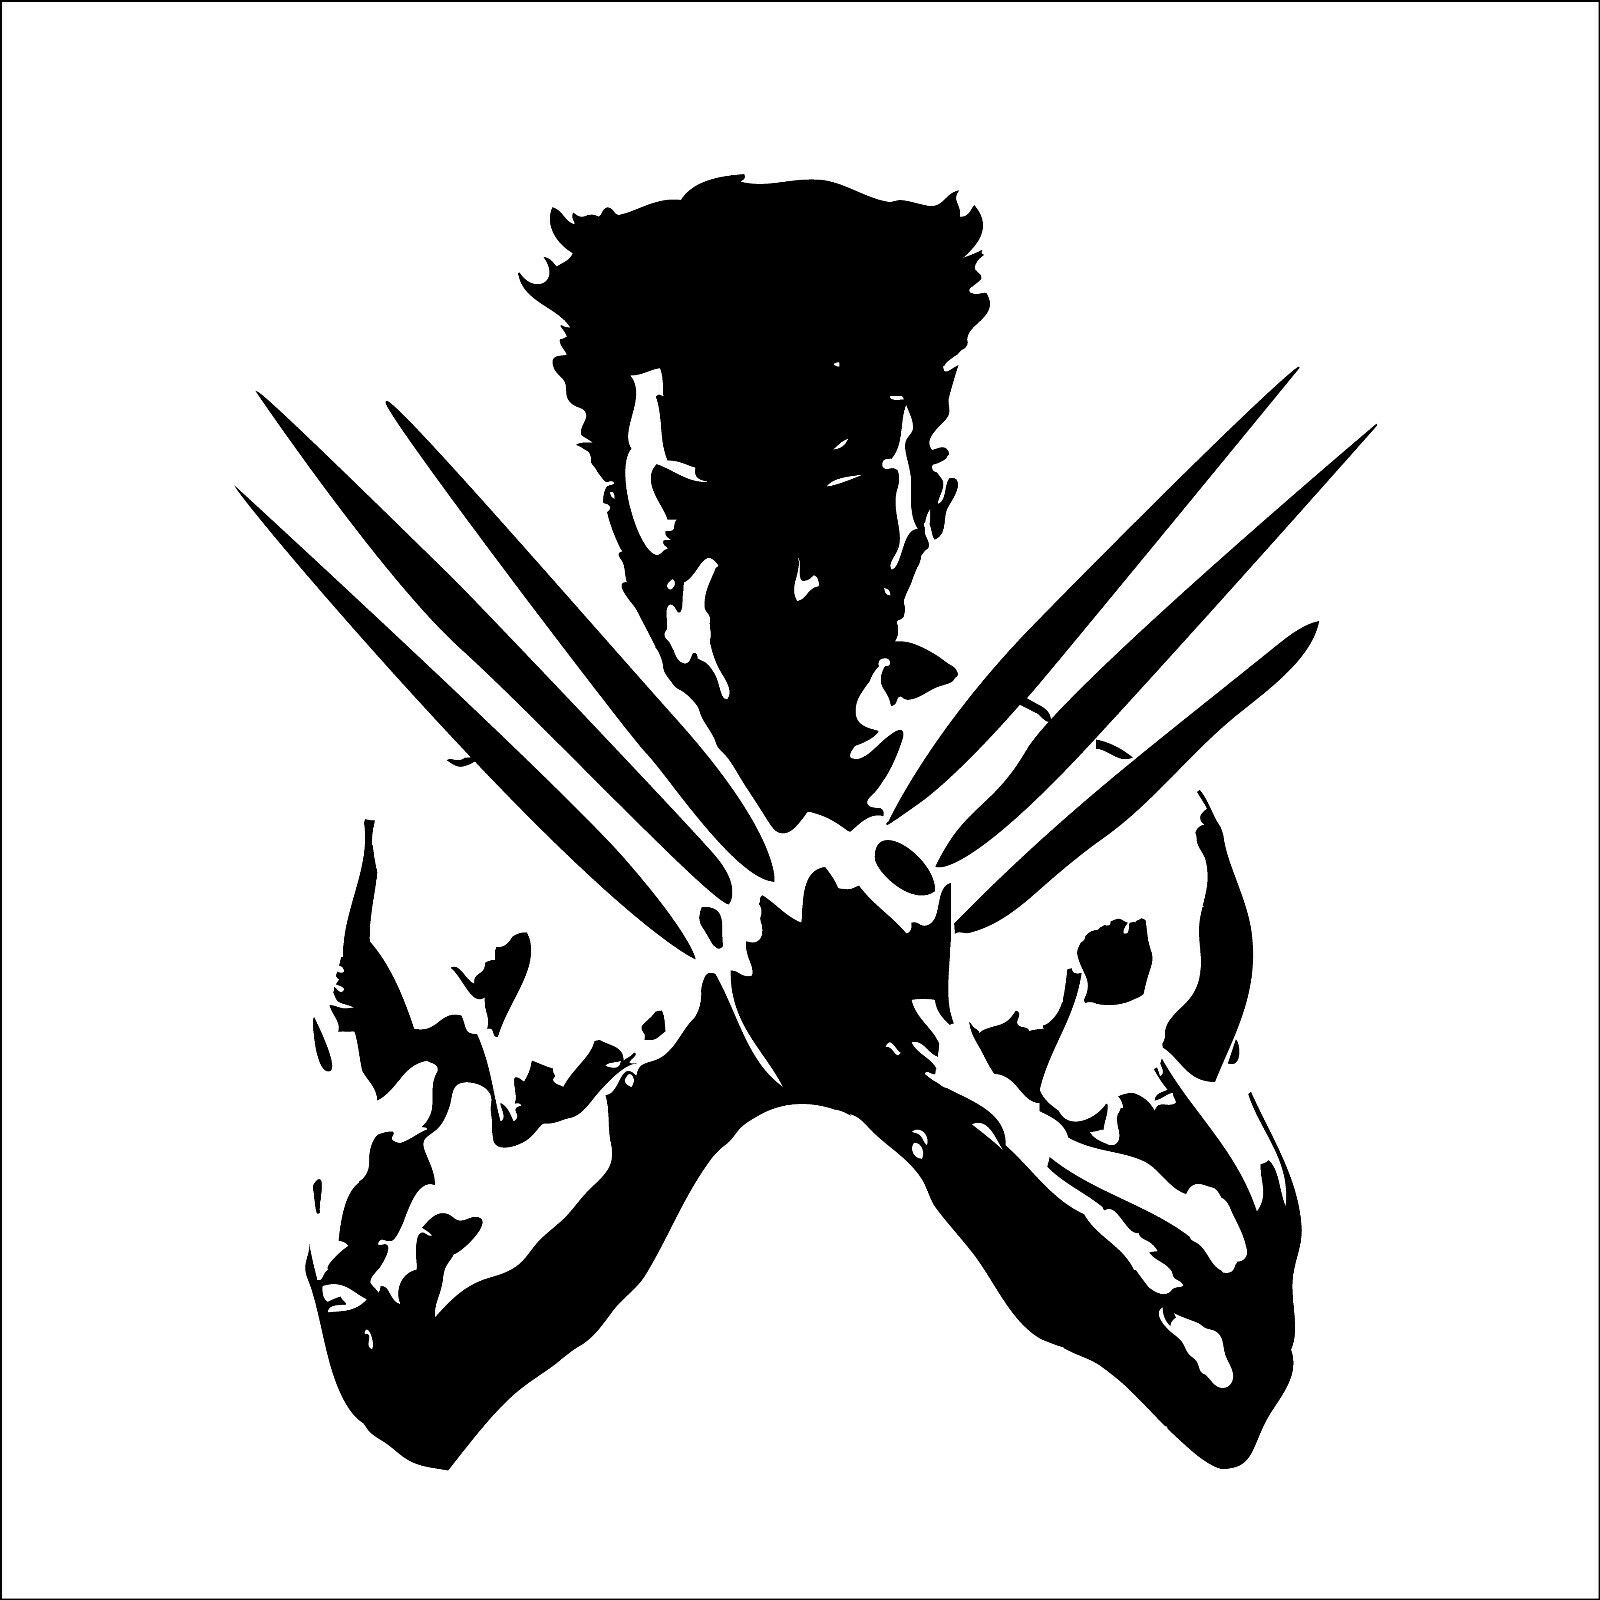 The Wolverine Sticker 210mmw Xmen Suit Wall Art 331520943926 additionally Military Skull Decals also Police Badge Images additionally Search additionally DUDA Spiderman. on superhero car stickers